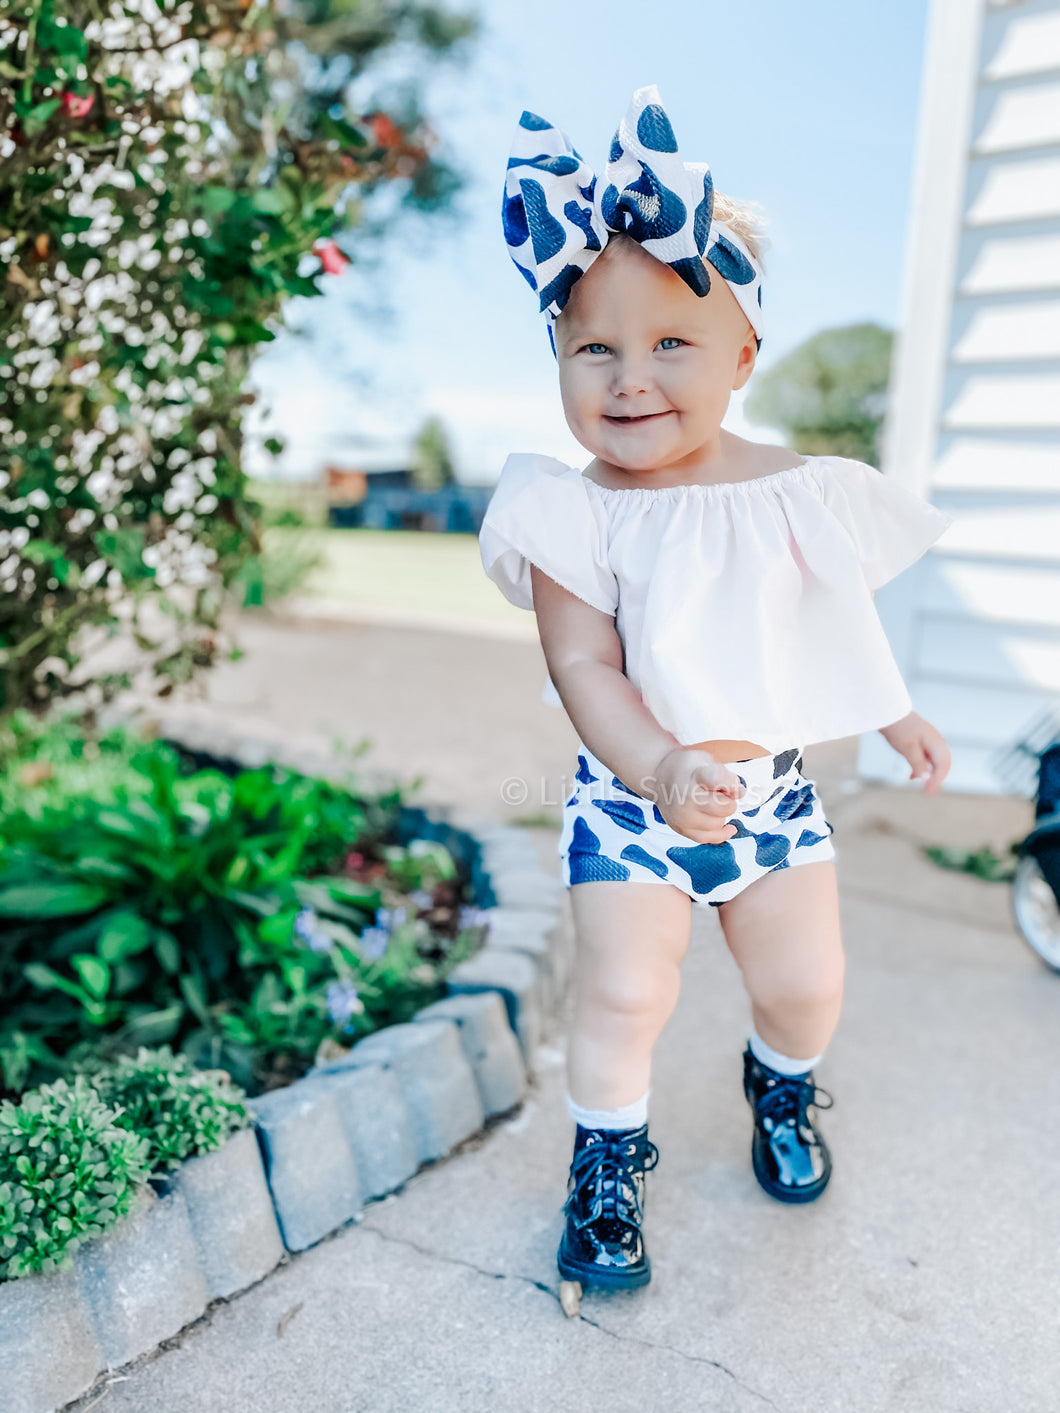 Cow Print High Waisted Bummies / Diaper Cover / Coming Home Outfit/ Birthday Outfit/ Smash Cake Outfit